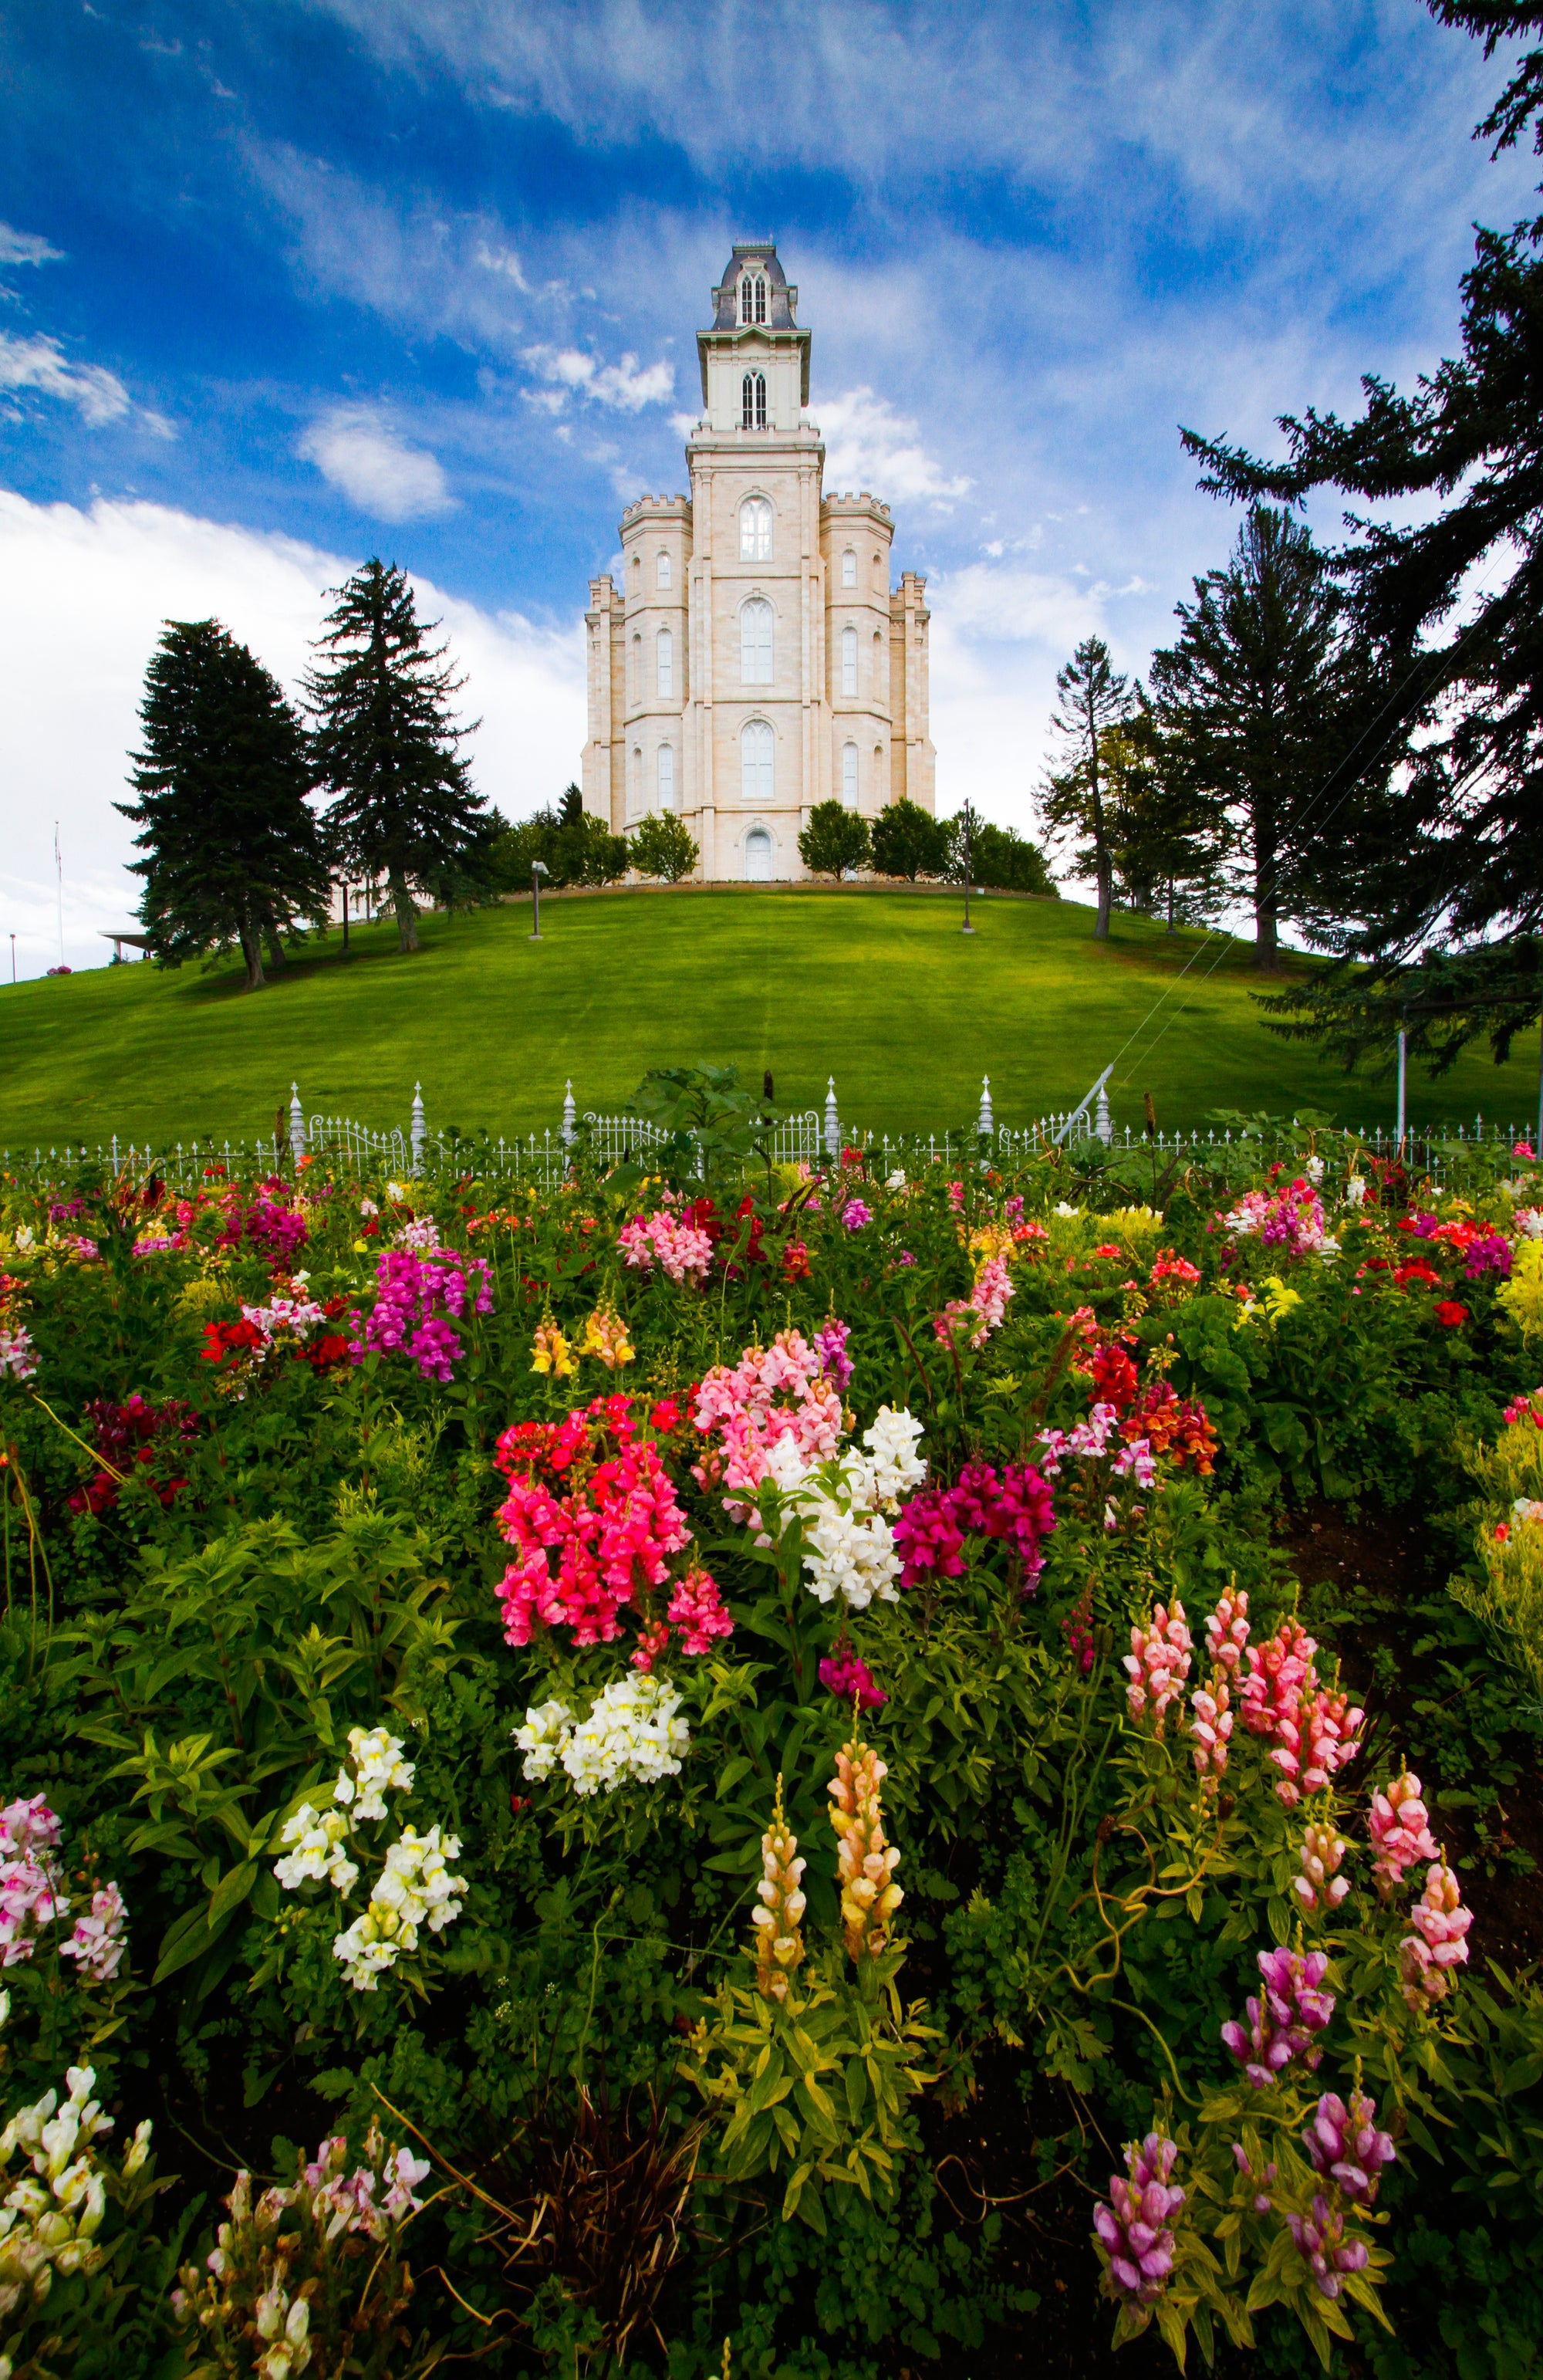 Church of Jesus Christ Temple, Manti, Utah.